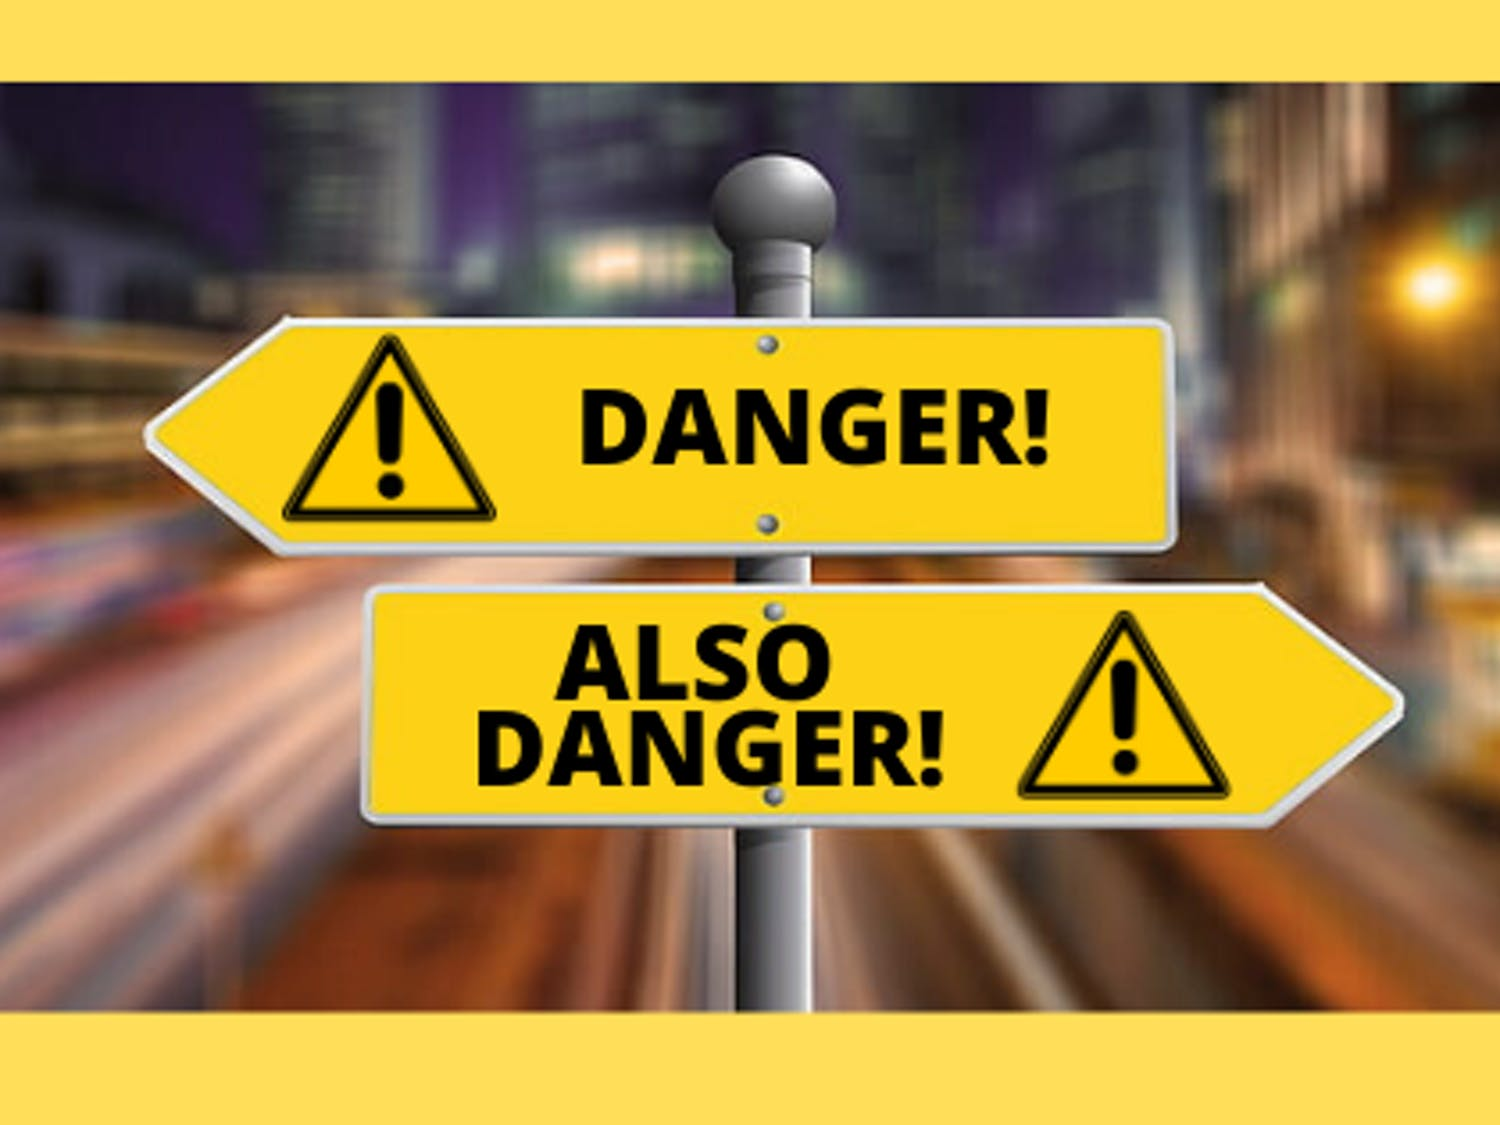 DANGER opinion sign